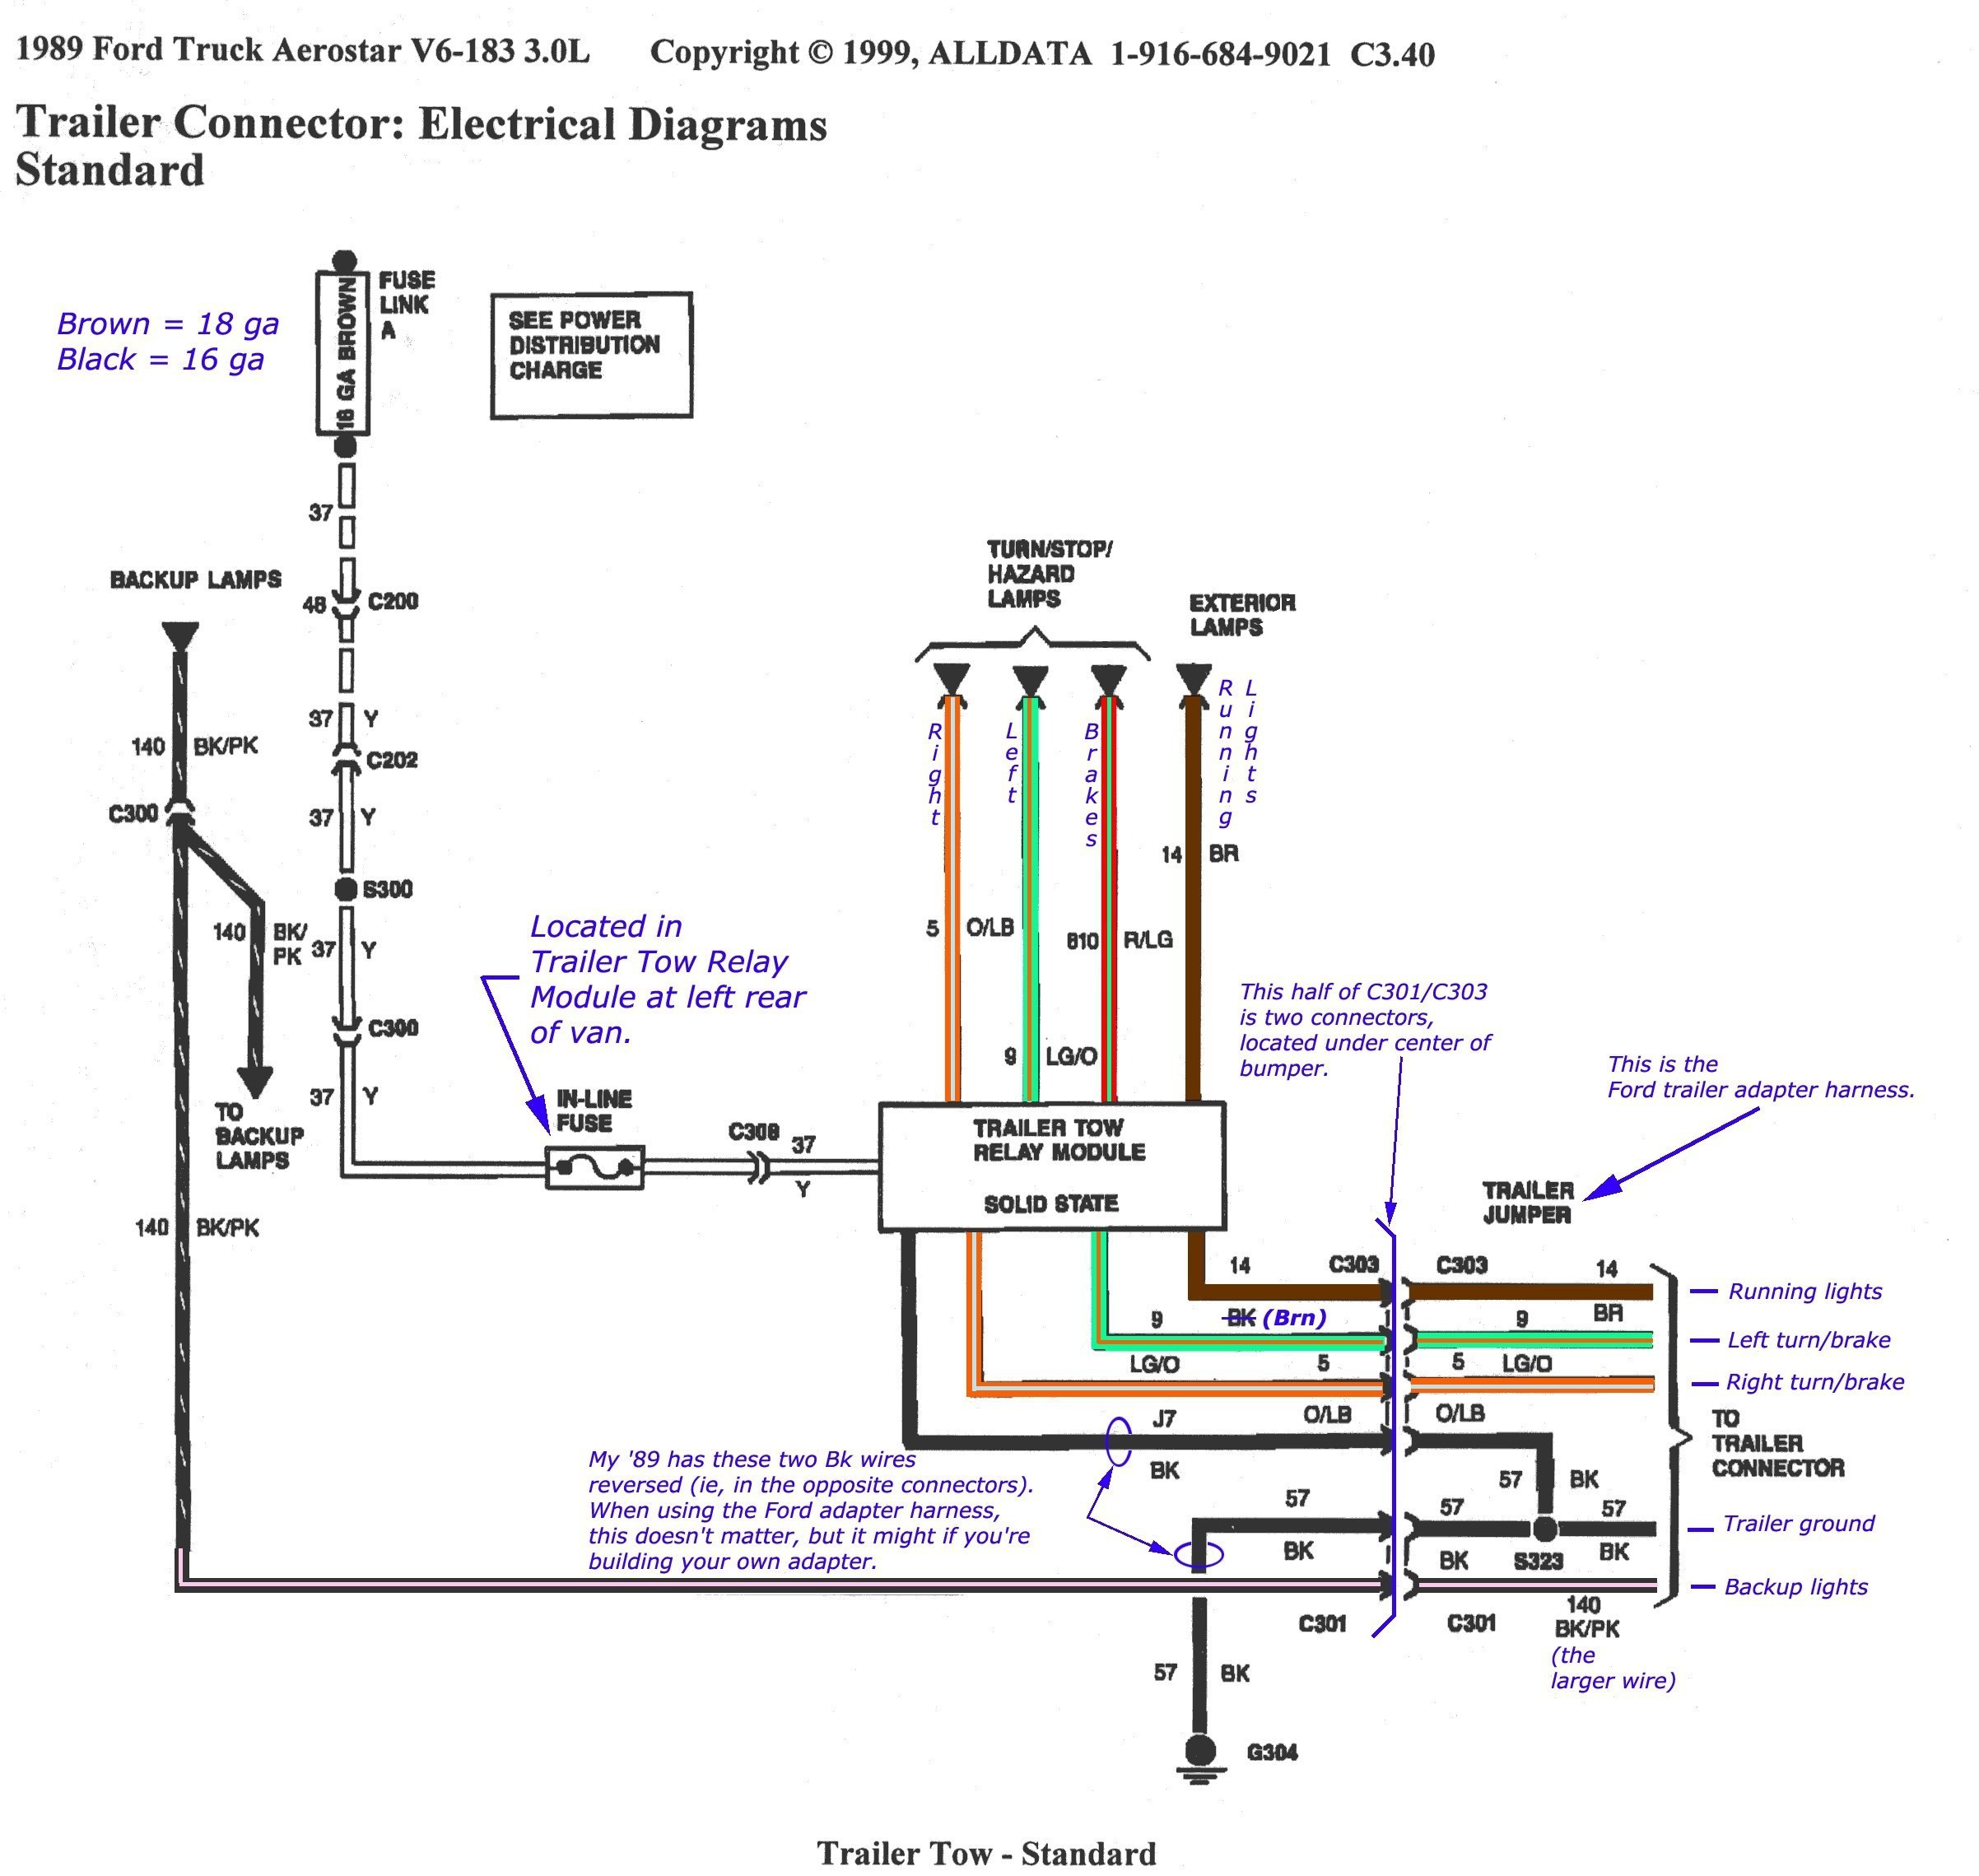 DIAGRAM] 2010 Ford F250 Trailer Wiring Diagram FULL Version HD Quality Wiring  Diagram - MATE-DIAGRAM.RADD.FRDiagram Database - Radd